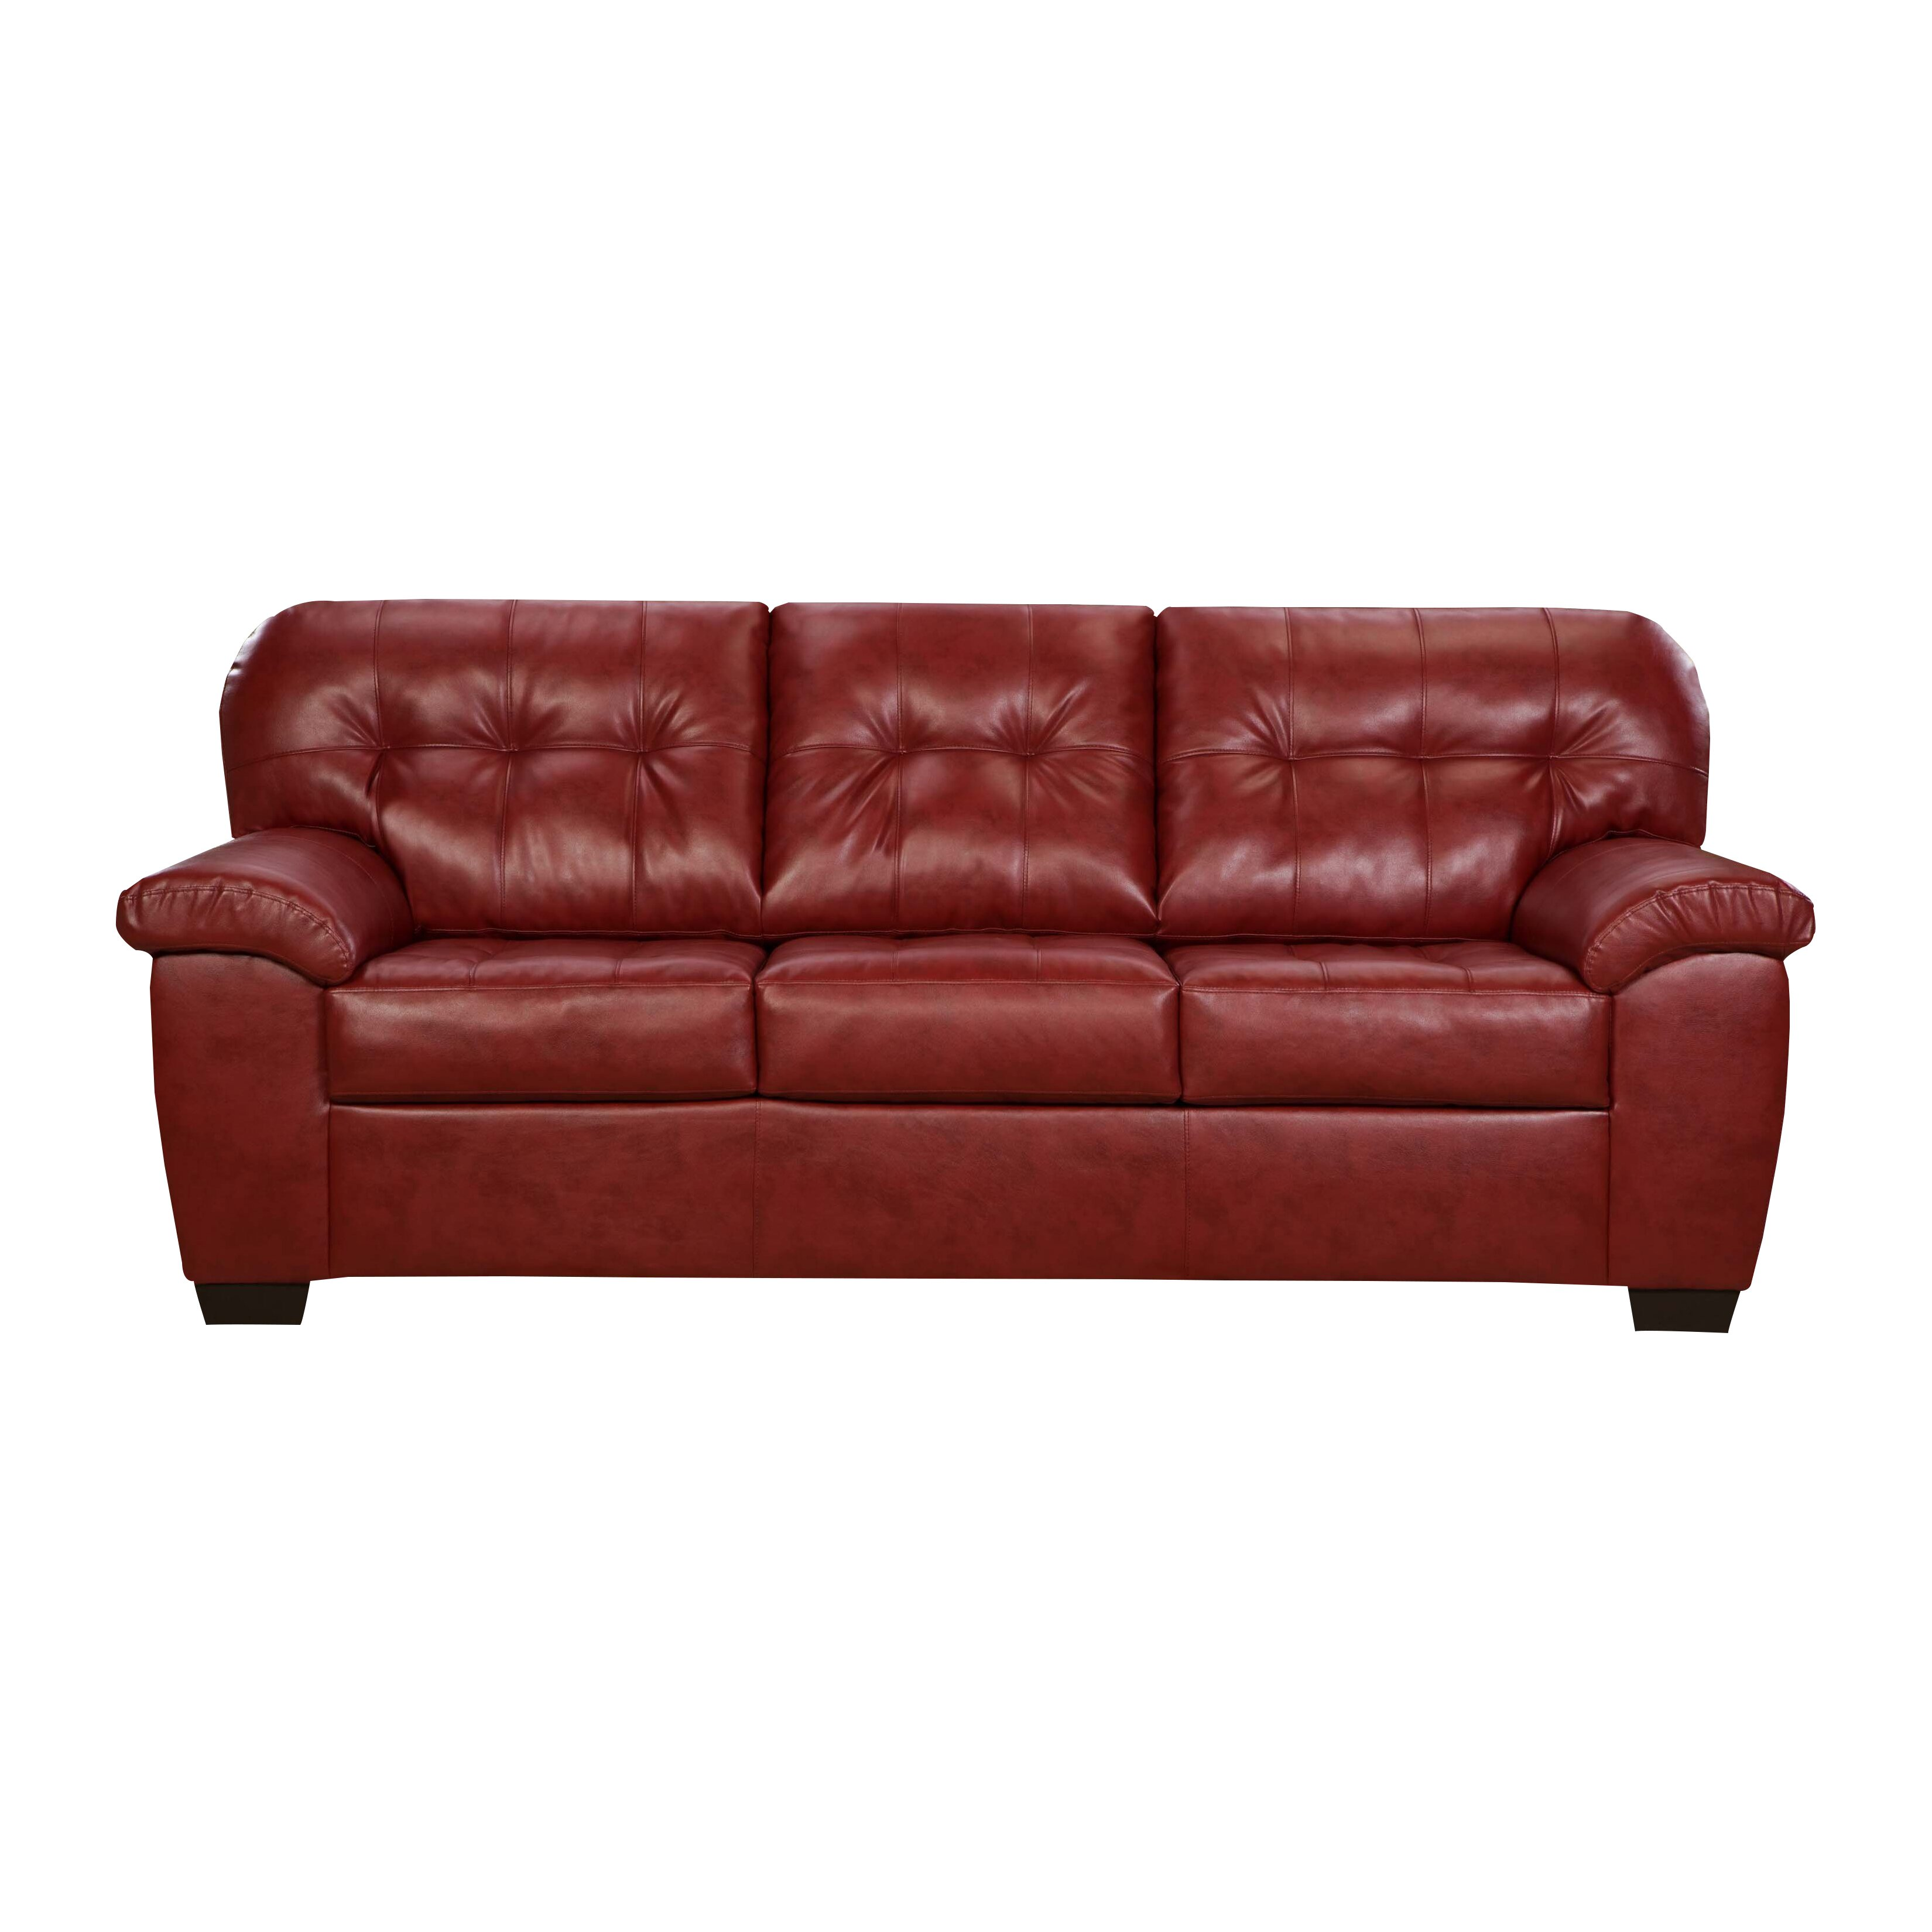 Simmons Upholstery Showtime Sofa Reviews Wayfair